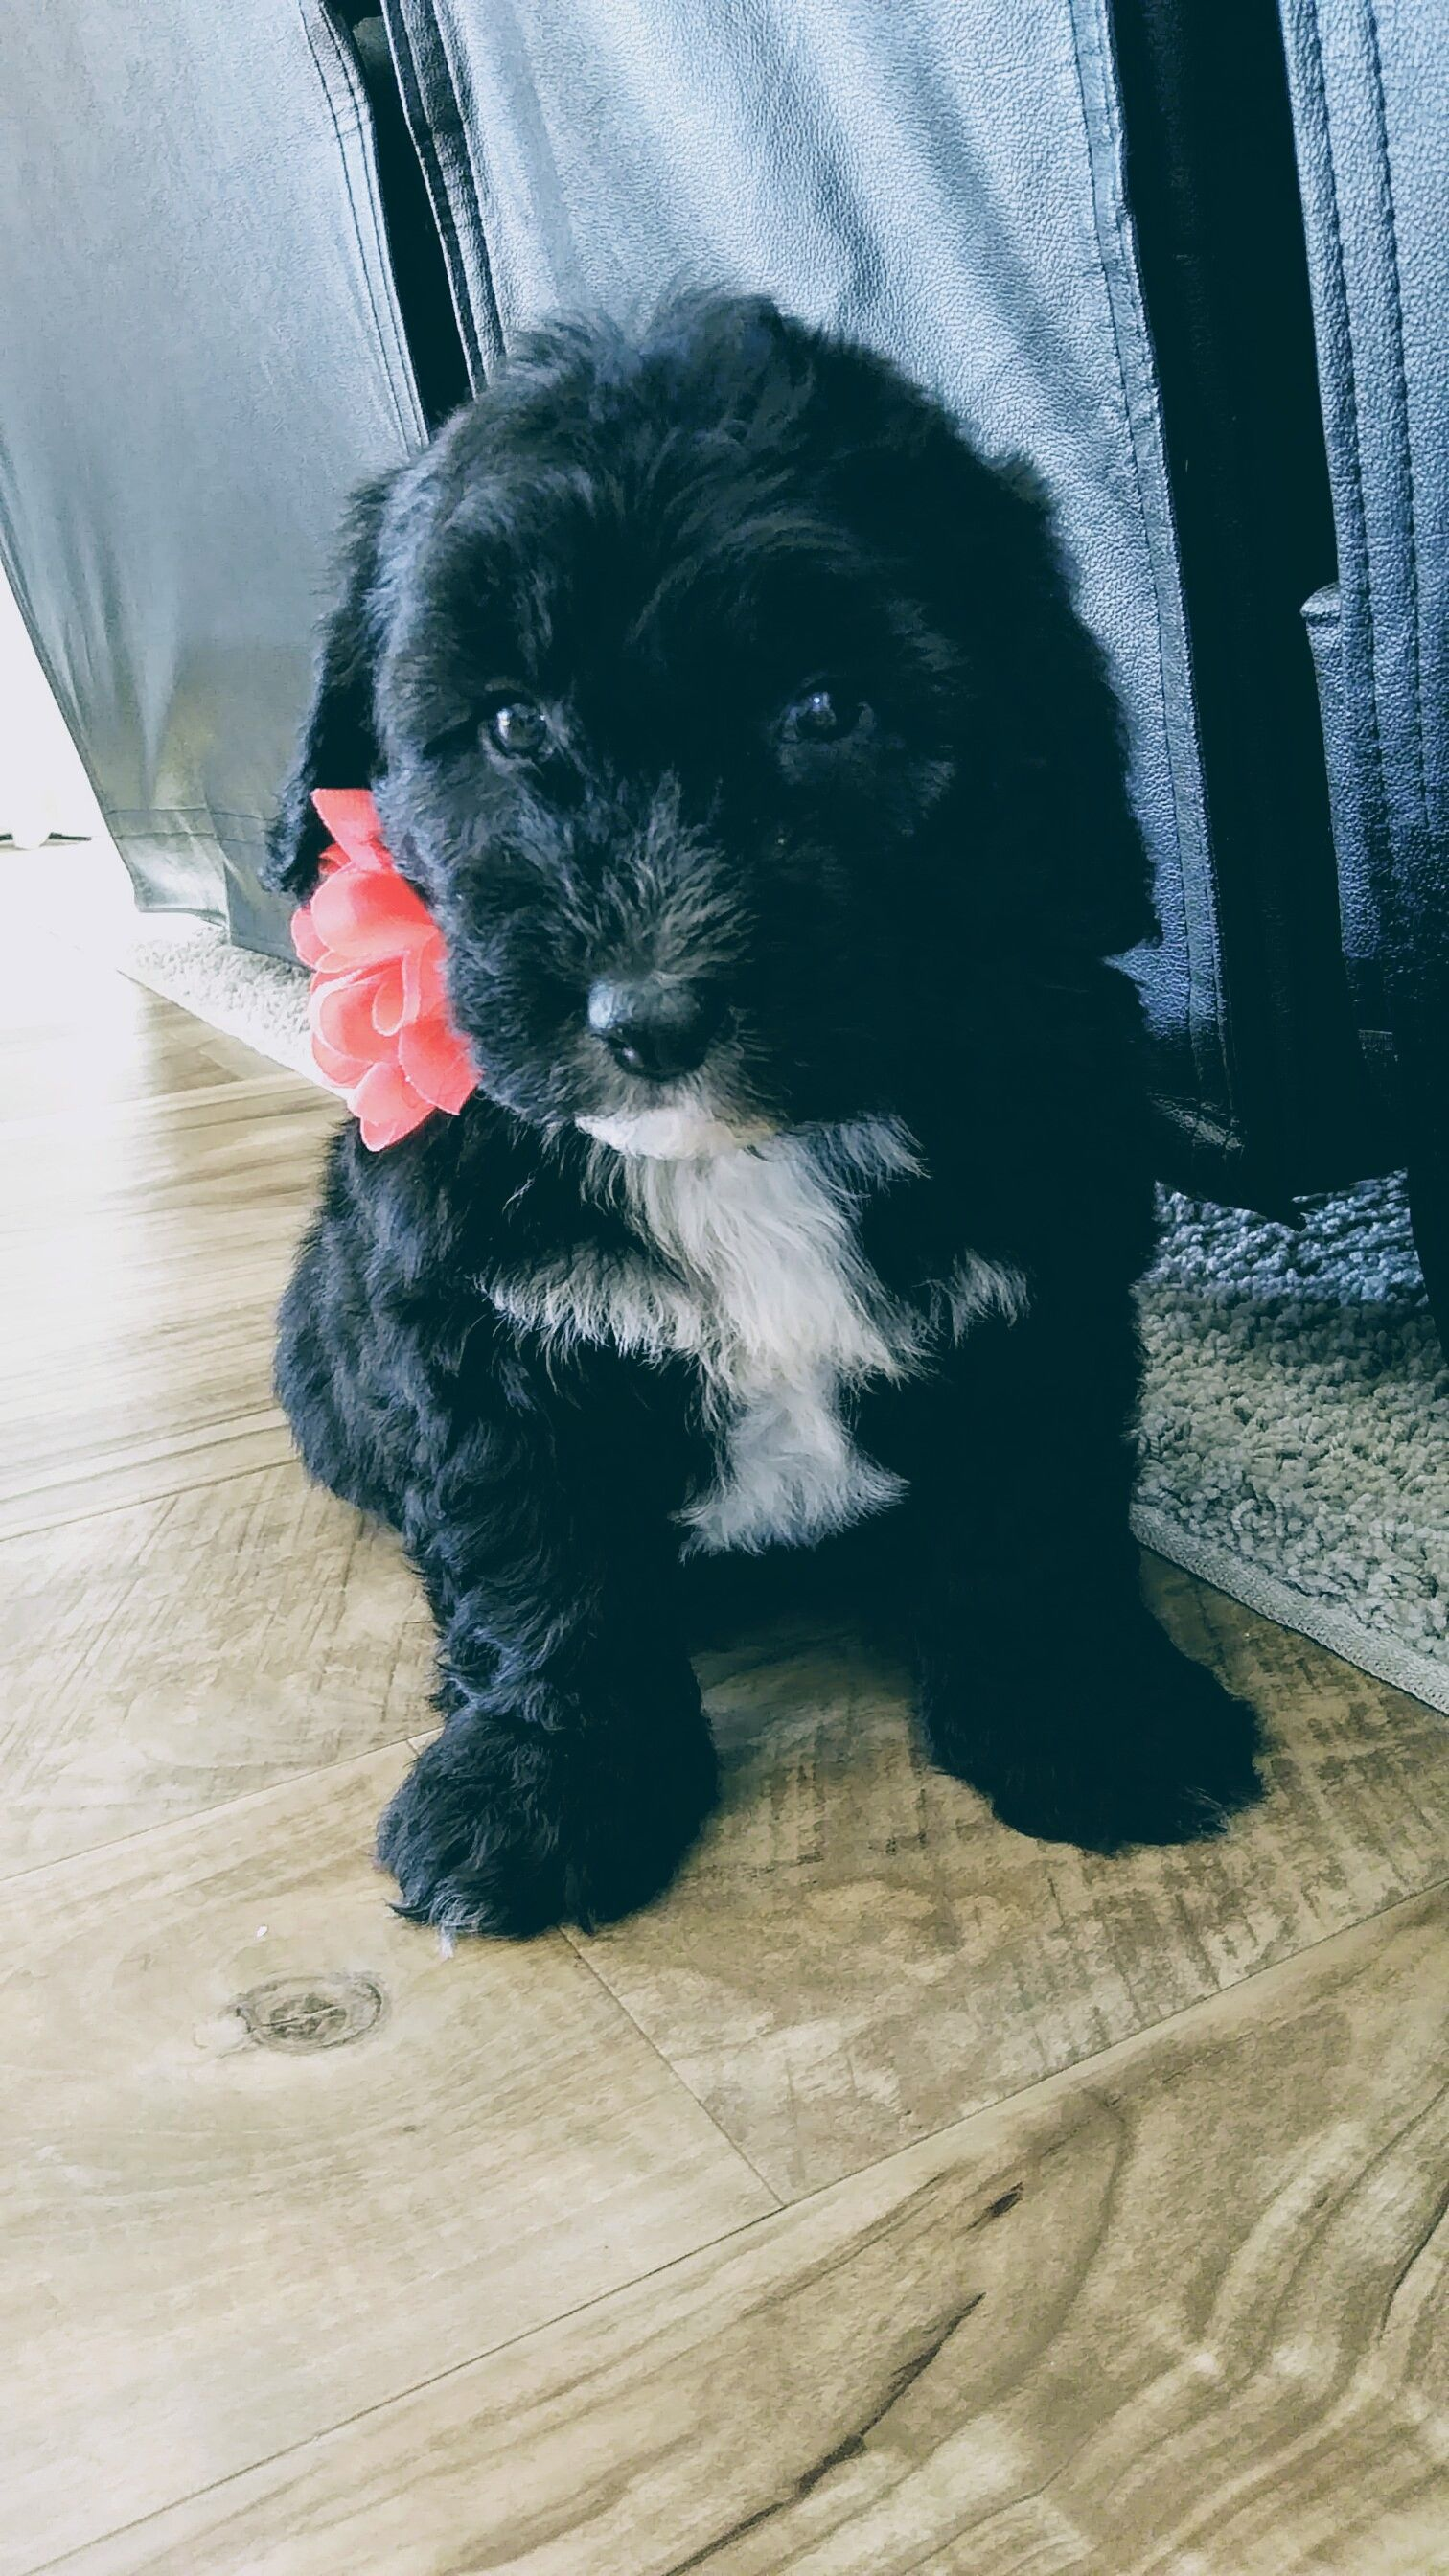 Markles A Female Mini Sheepadoodle Puppy For Sale In Ohio Find Cute Mini Sheepadoodle Puppies And Responsi Sheepadoodle Puppy Puppies For Sale Sheepadoodle